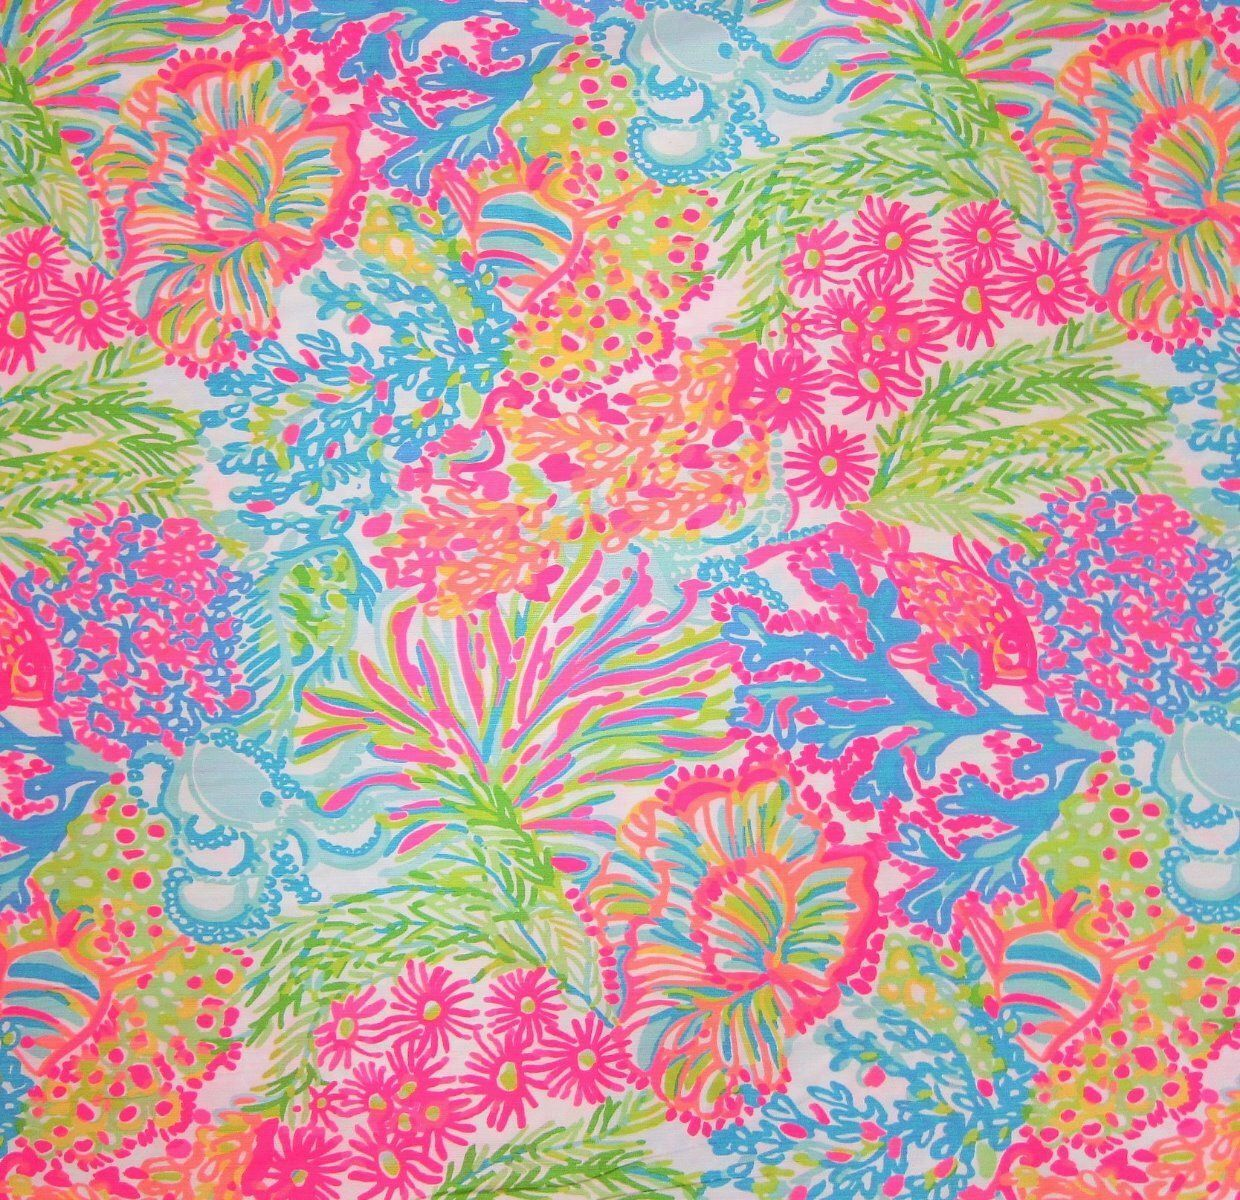 4d556f3e6f3321 Lilly Pulitzer Fabric Lovers Coral by PreppyFabrics on Etsy https://www.etsy